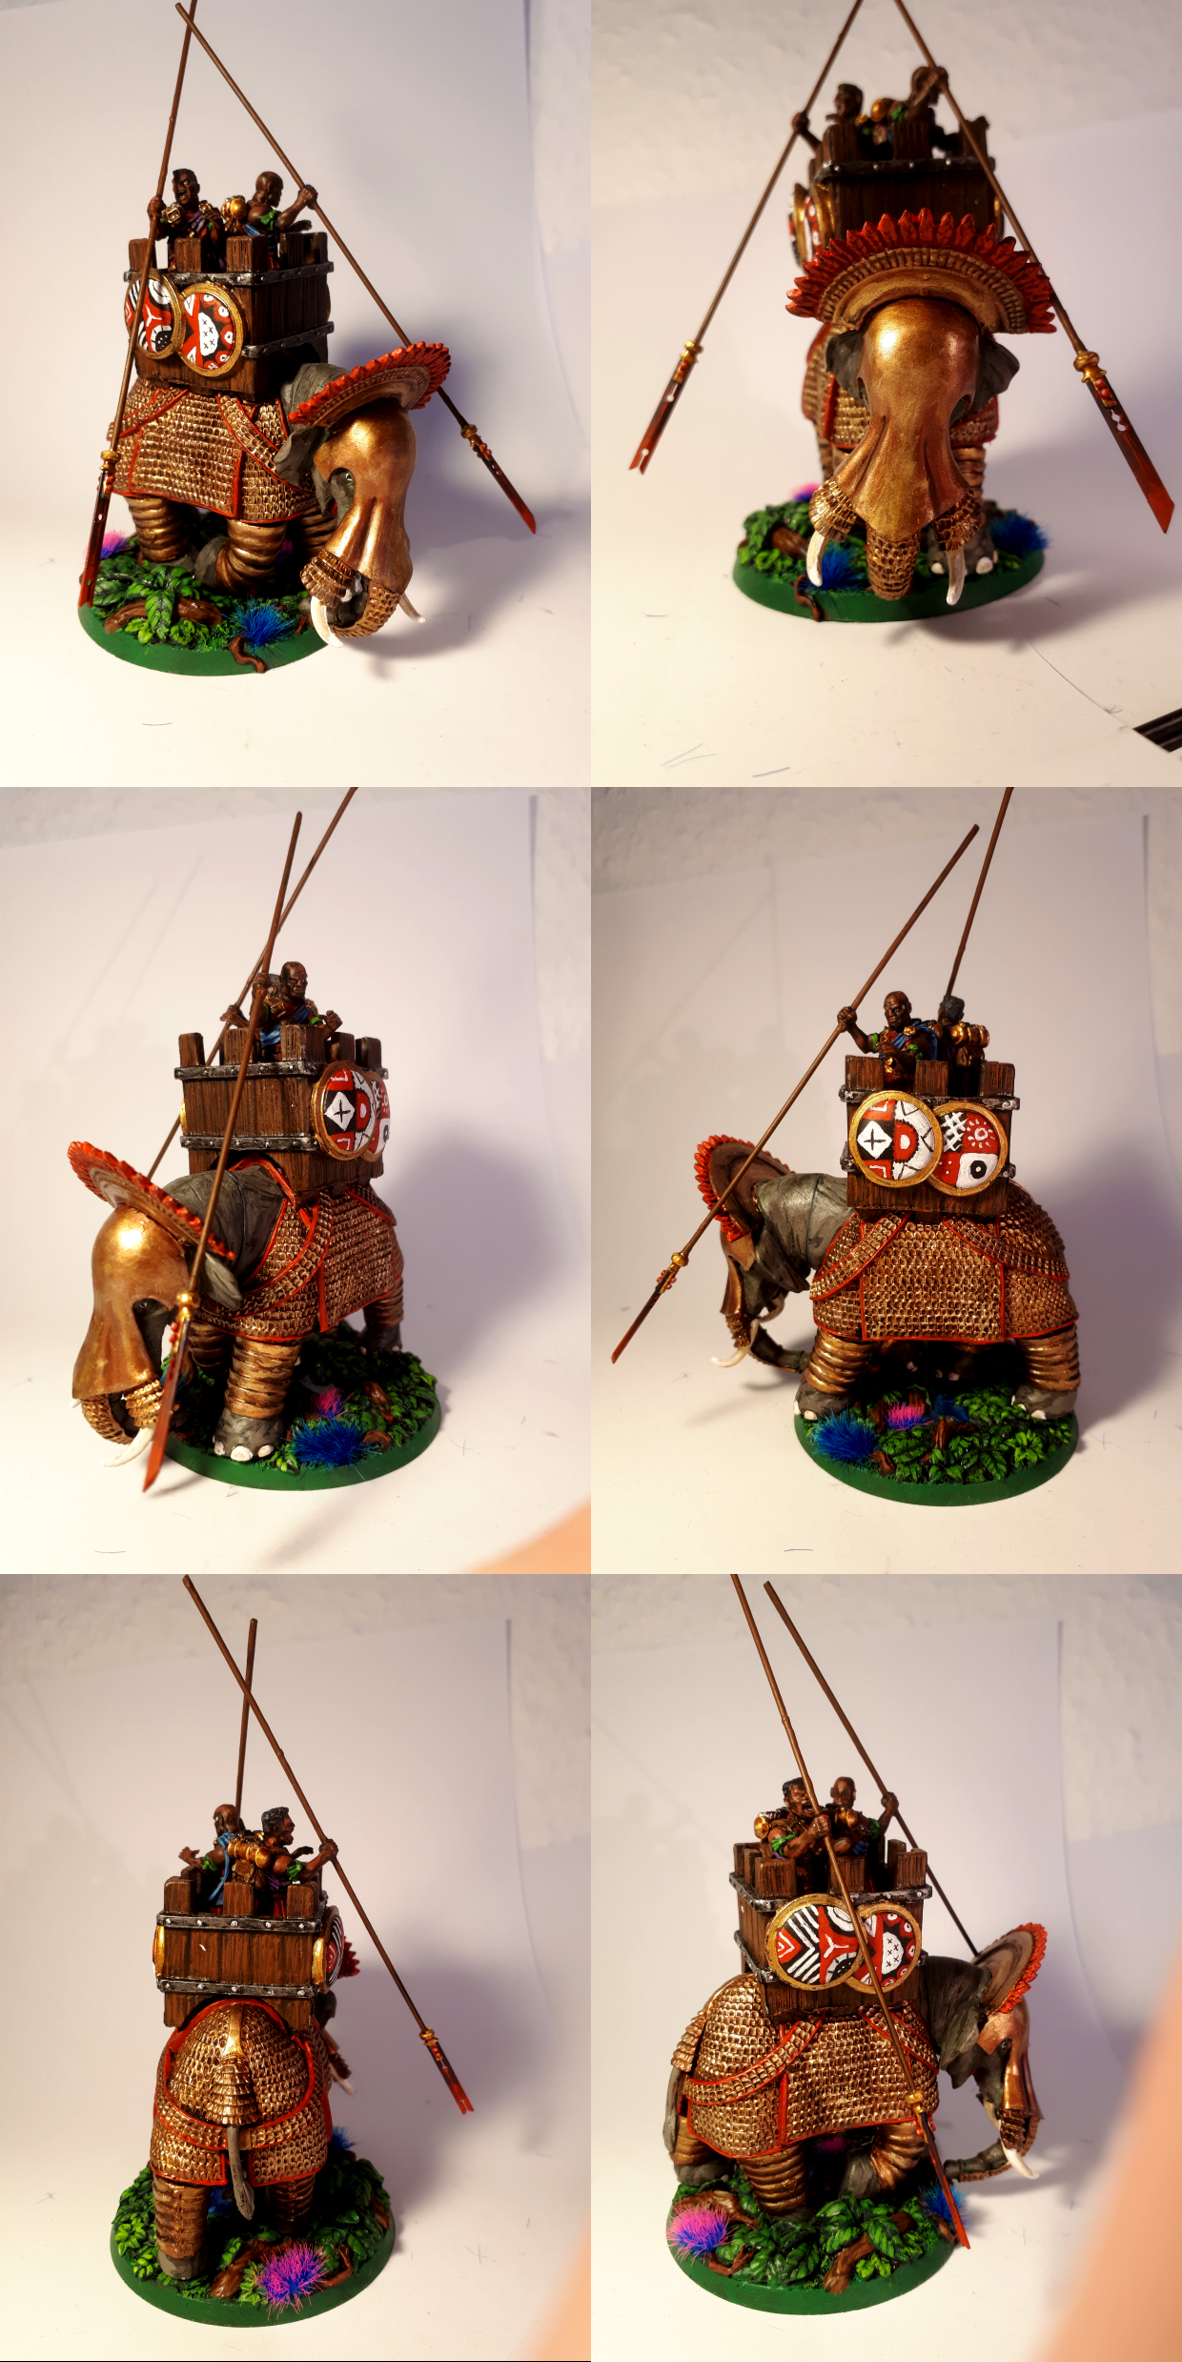 Imperial Guard, Sentinel, Sentinel Power Lifter, Victoria Miniatures, War Elephant, Warlord Games